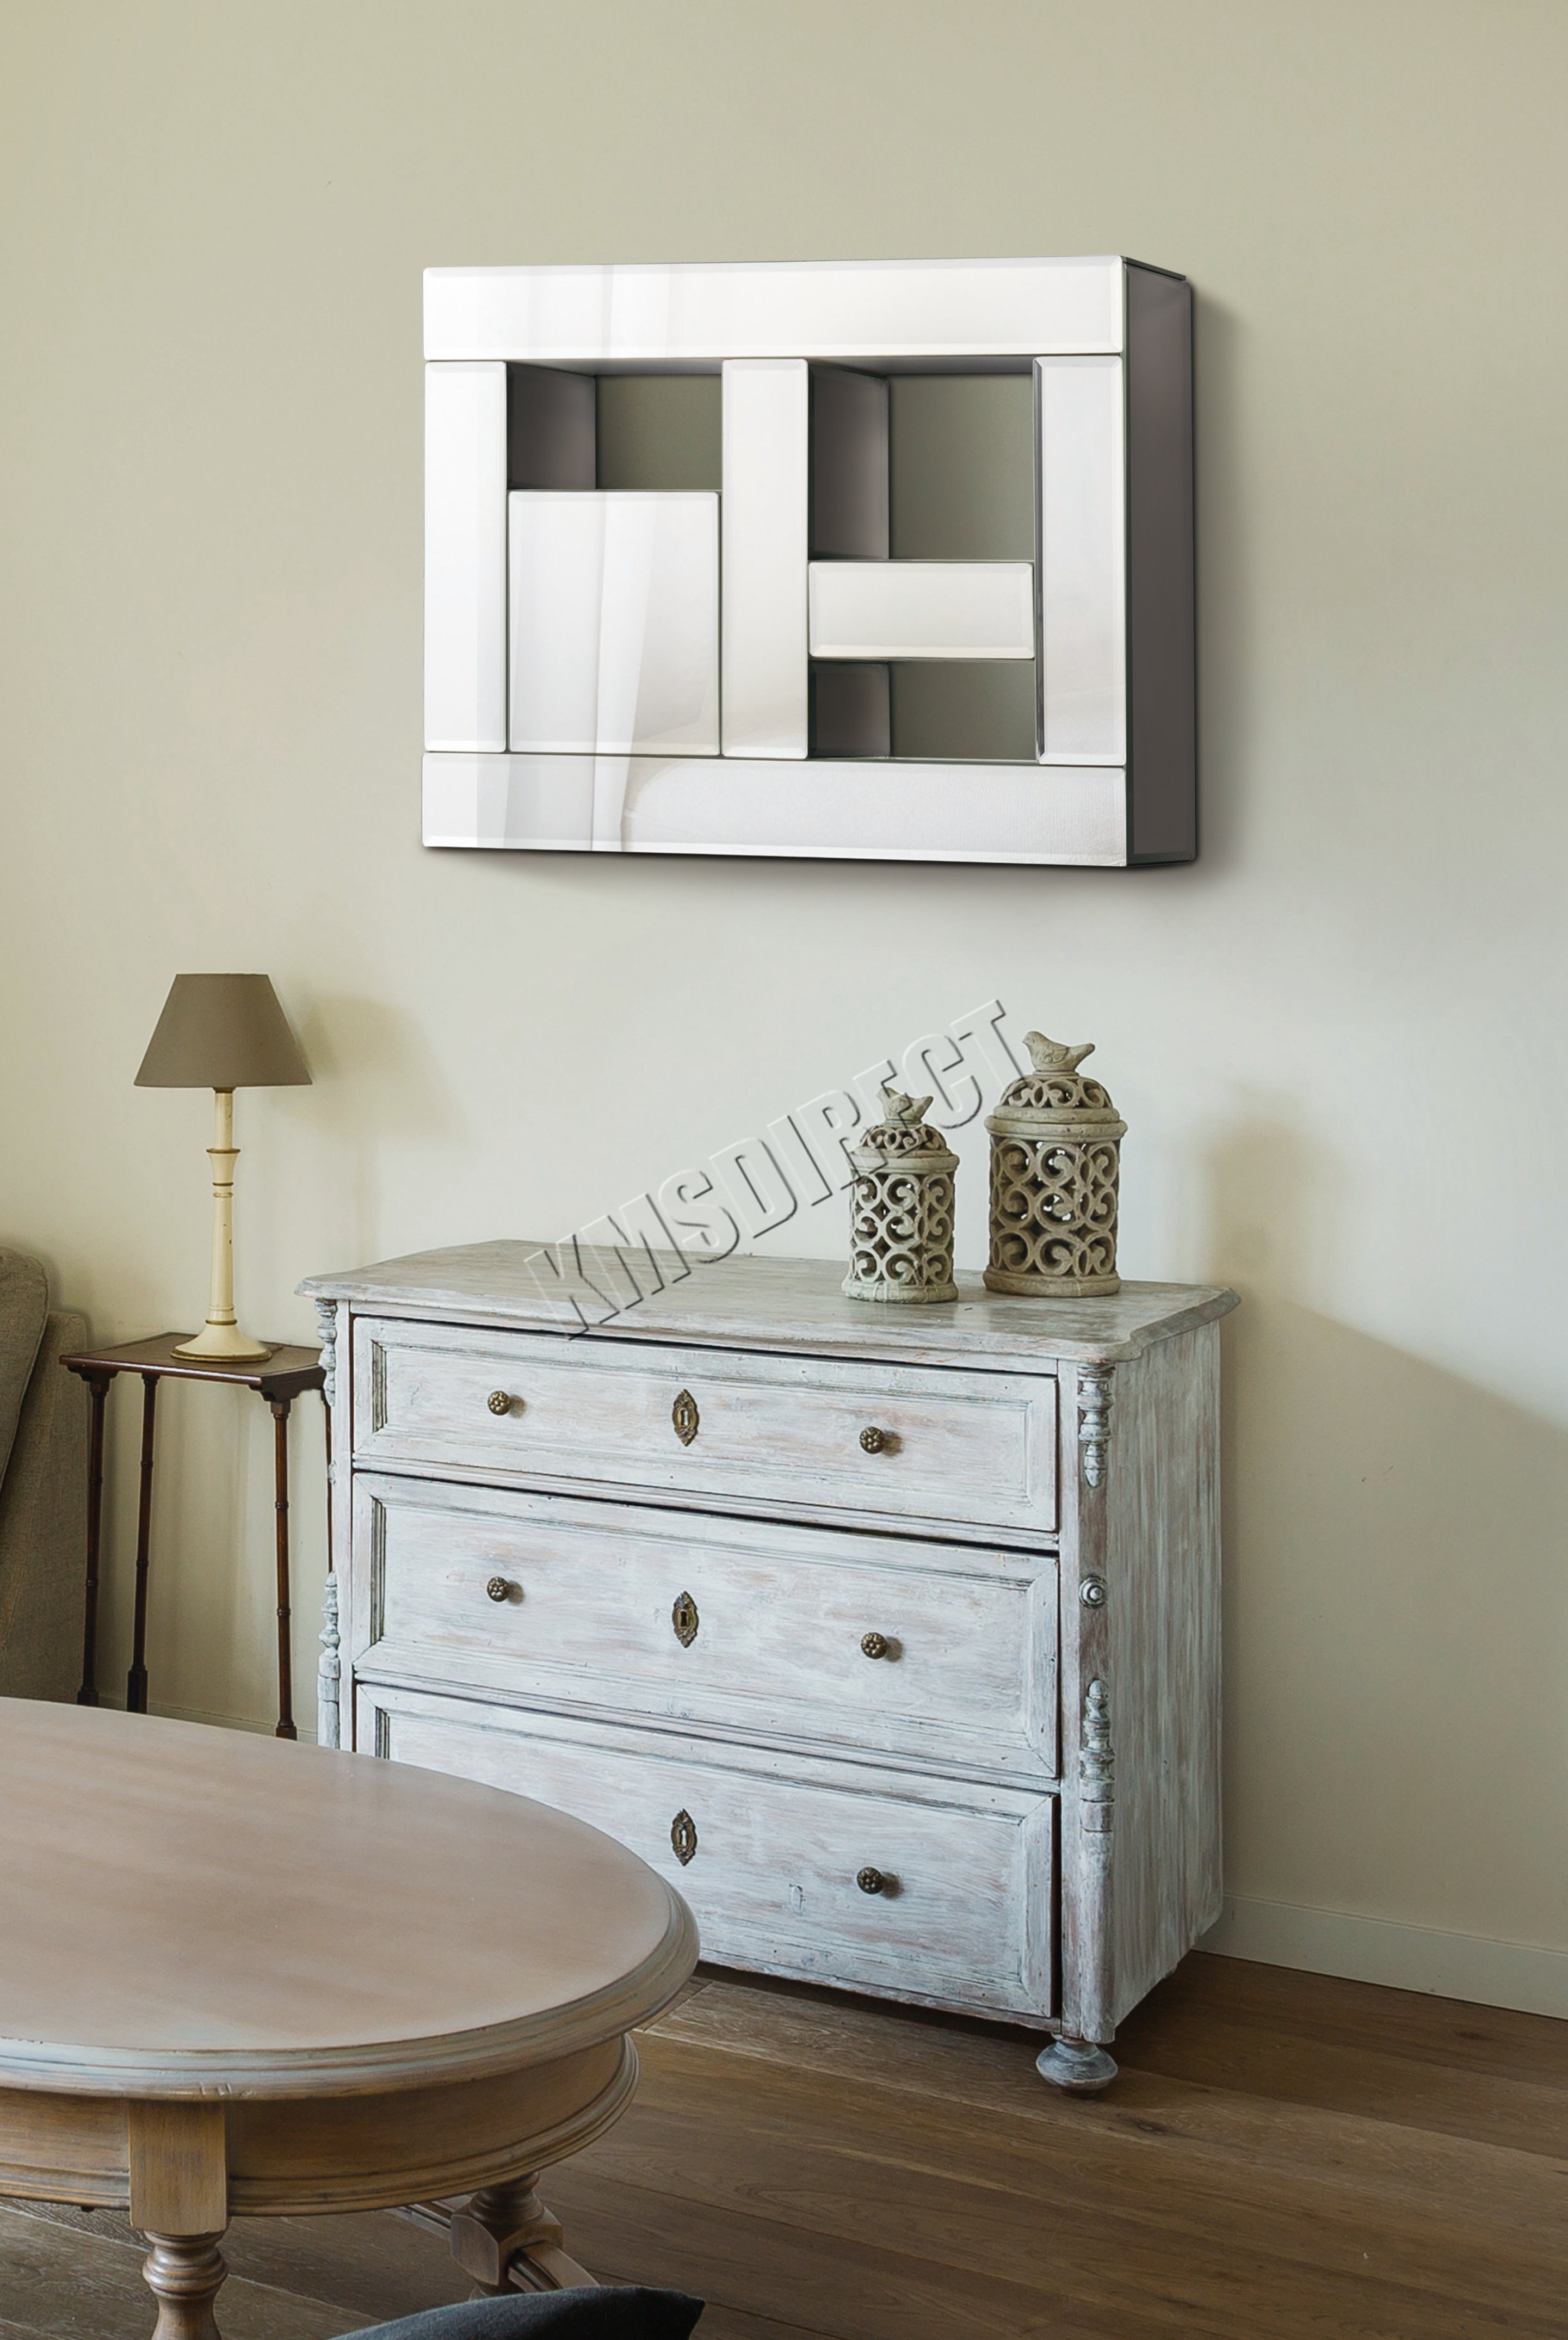 Foxhunter bevelled mirrored furniture glass floating wall mirror image is loading foxhunter bevelled mirrored furniture glass floating wall mirror amipublicfo Image collections